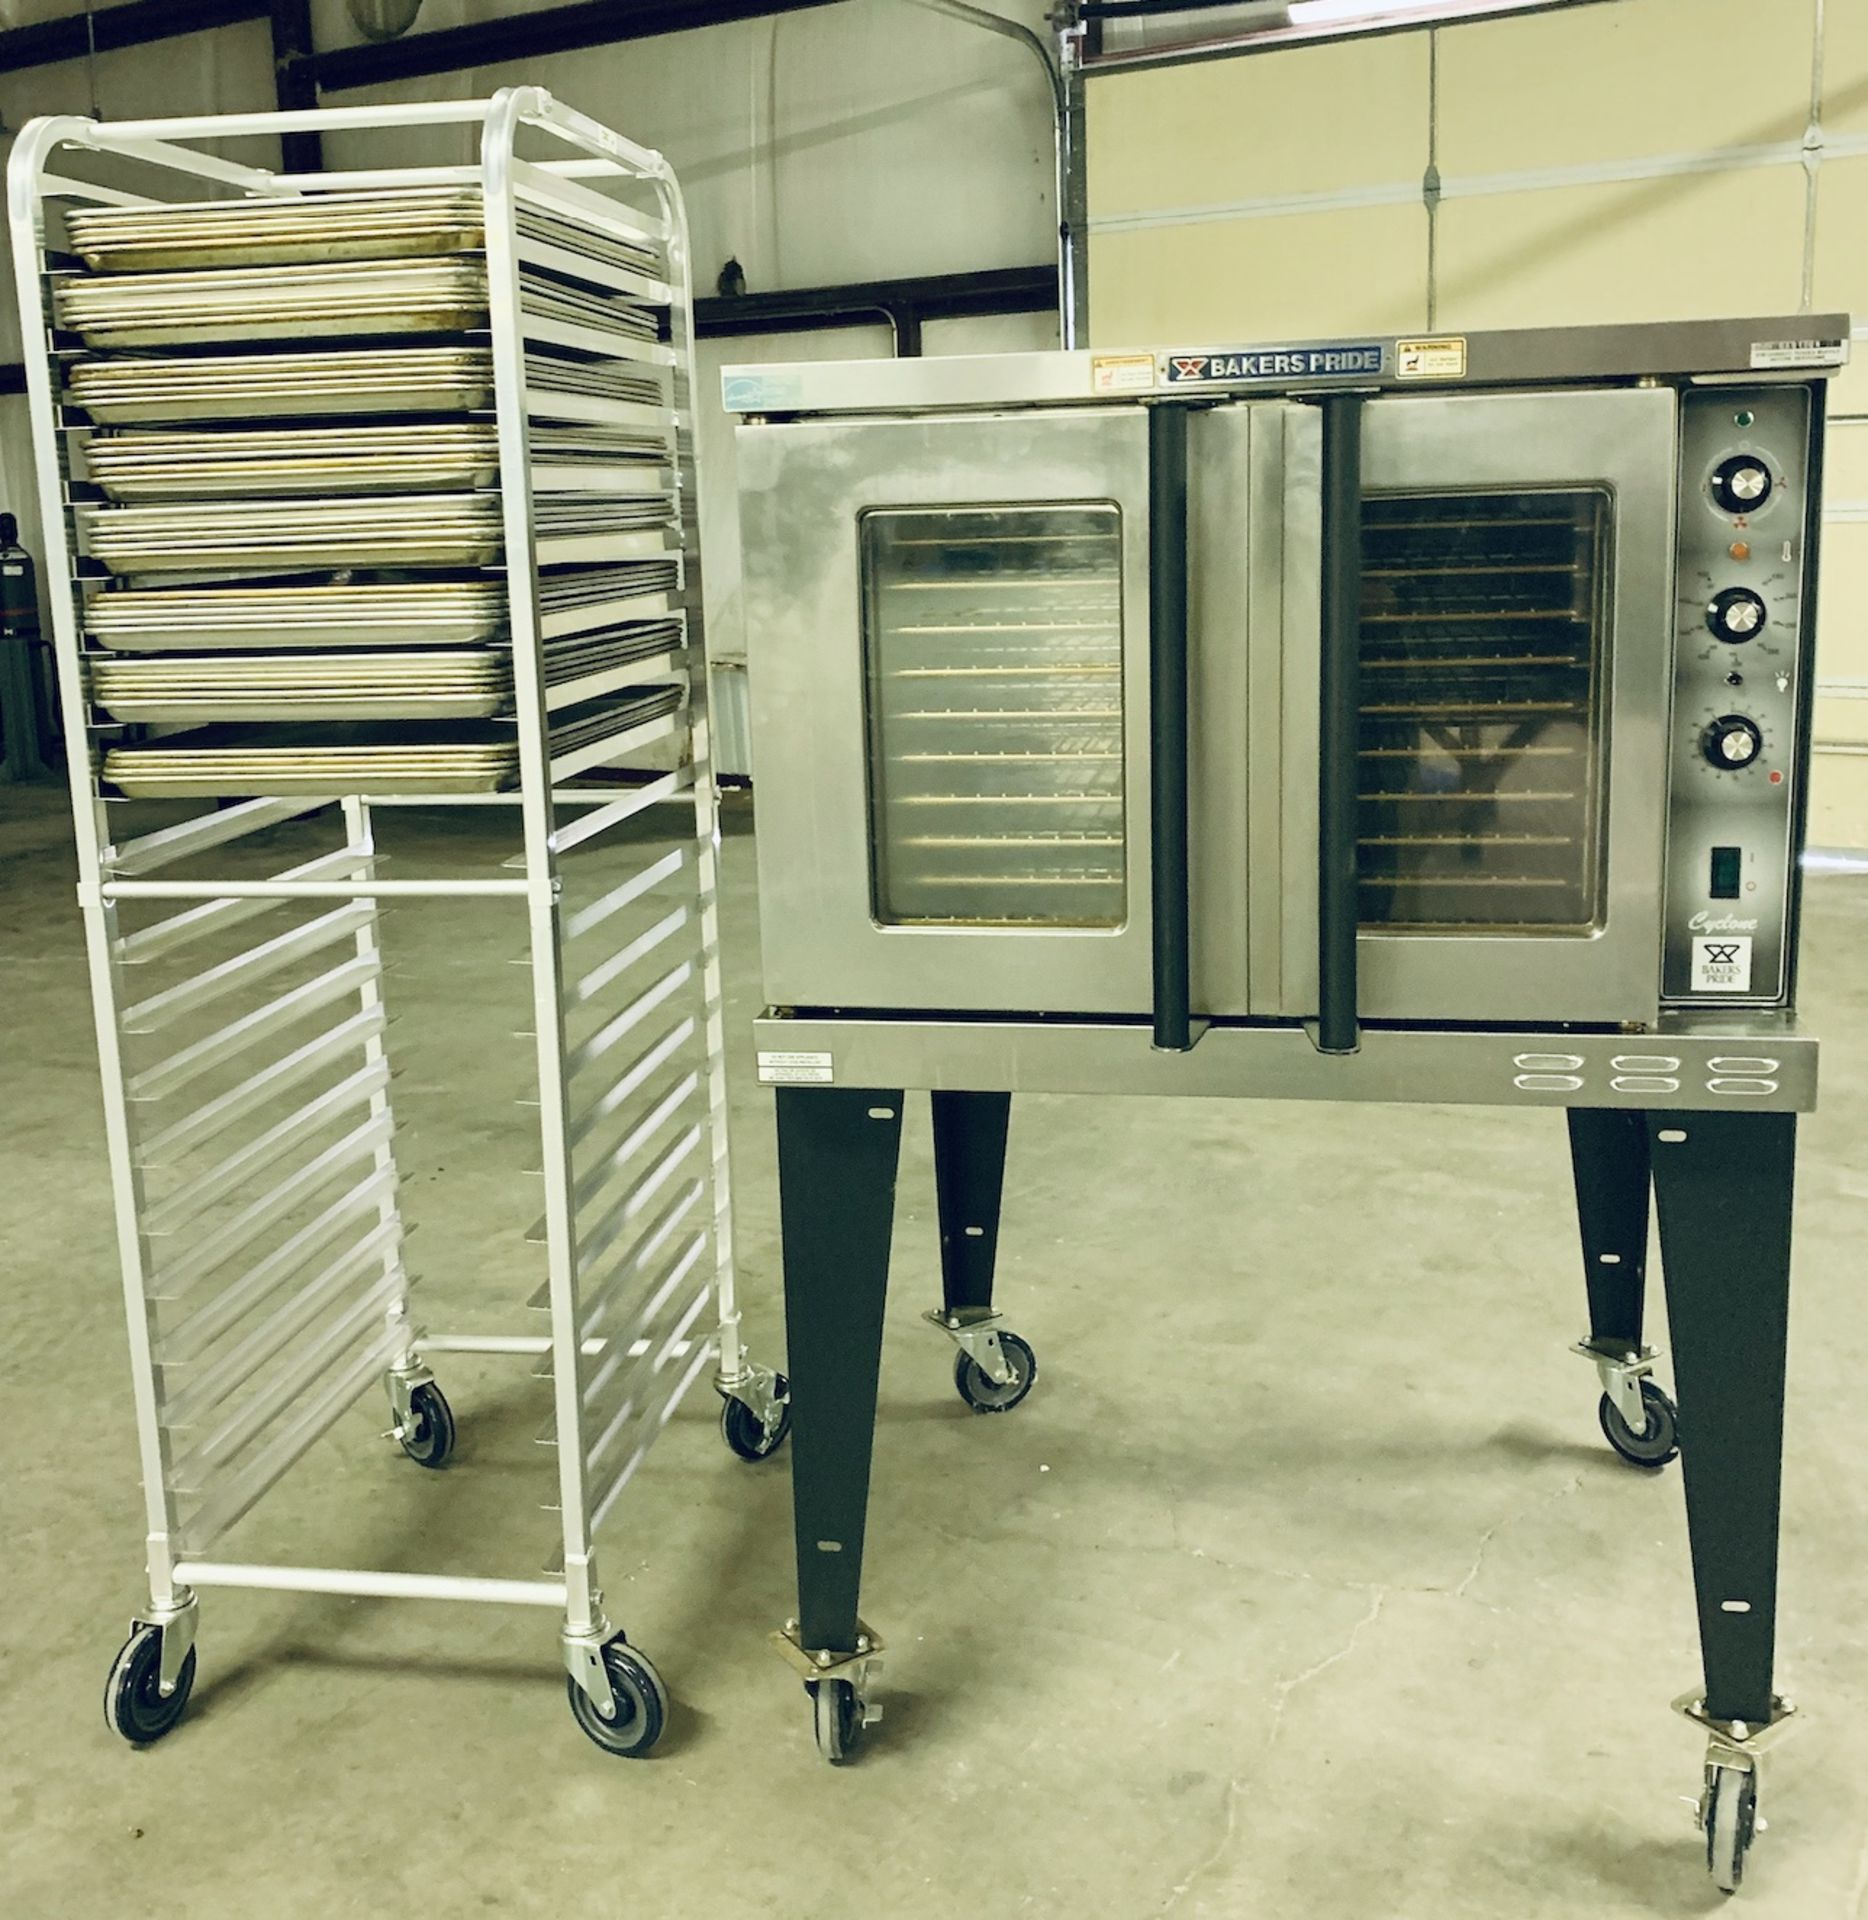 Used Bakers Pride Cyclone Series Single Deck Full Size Electric Decarb Oven. Model BCO-E1w/ 39 trays